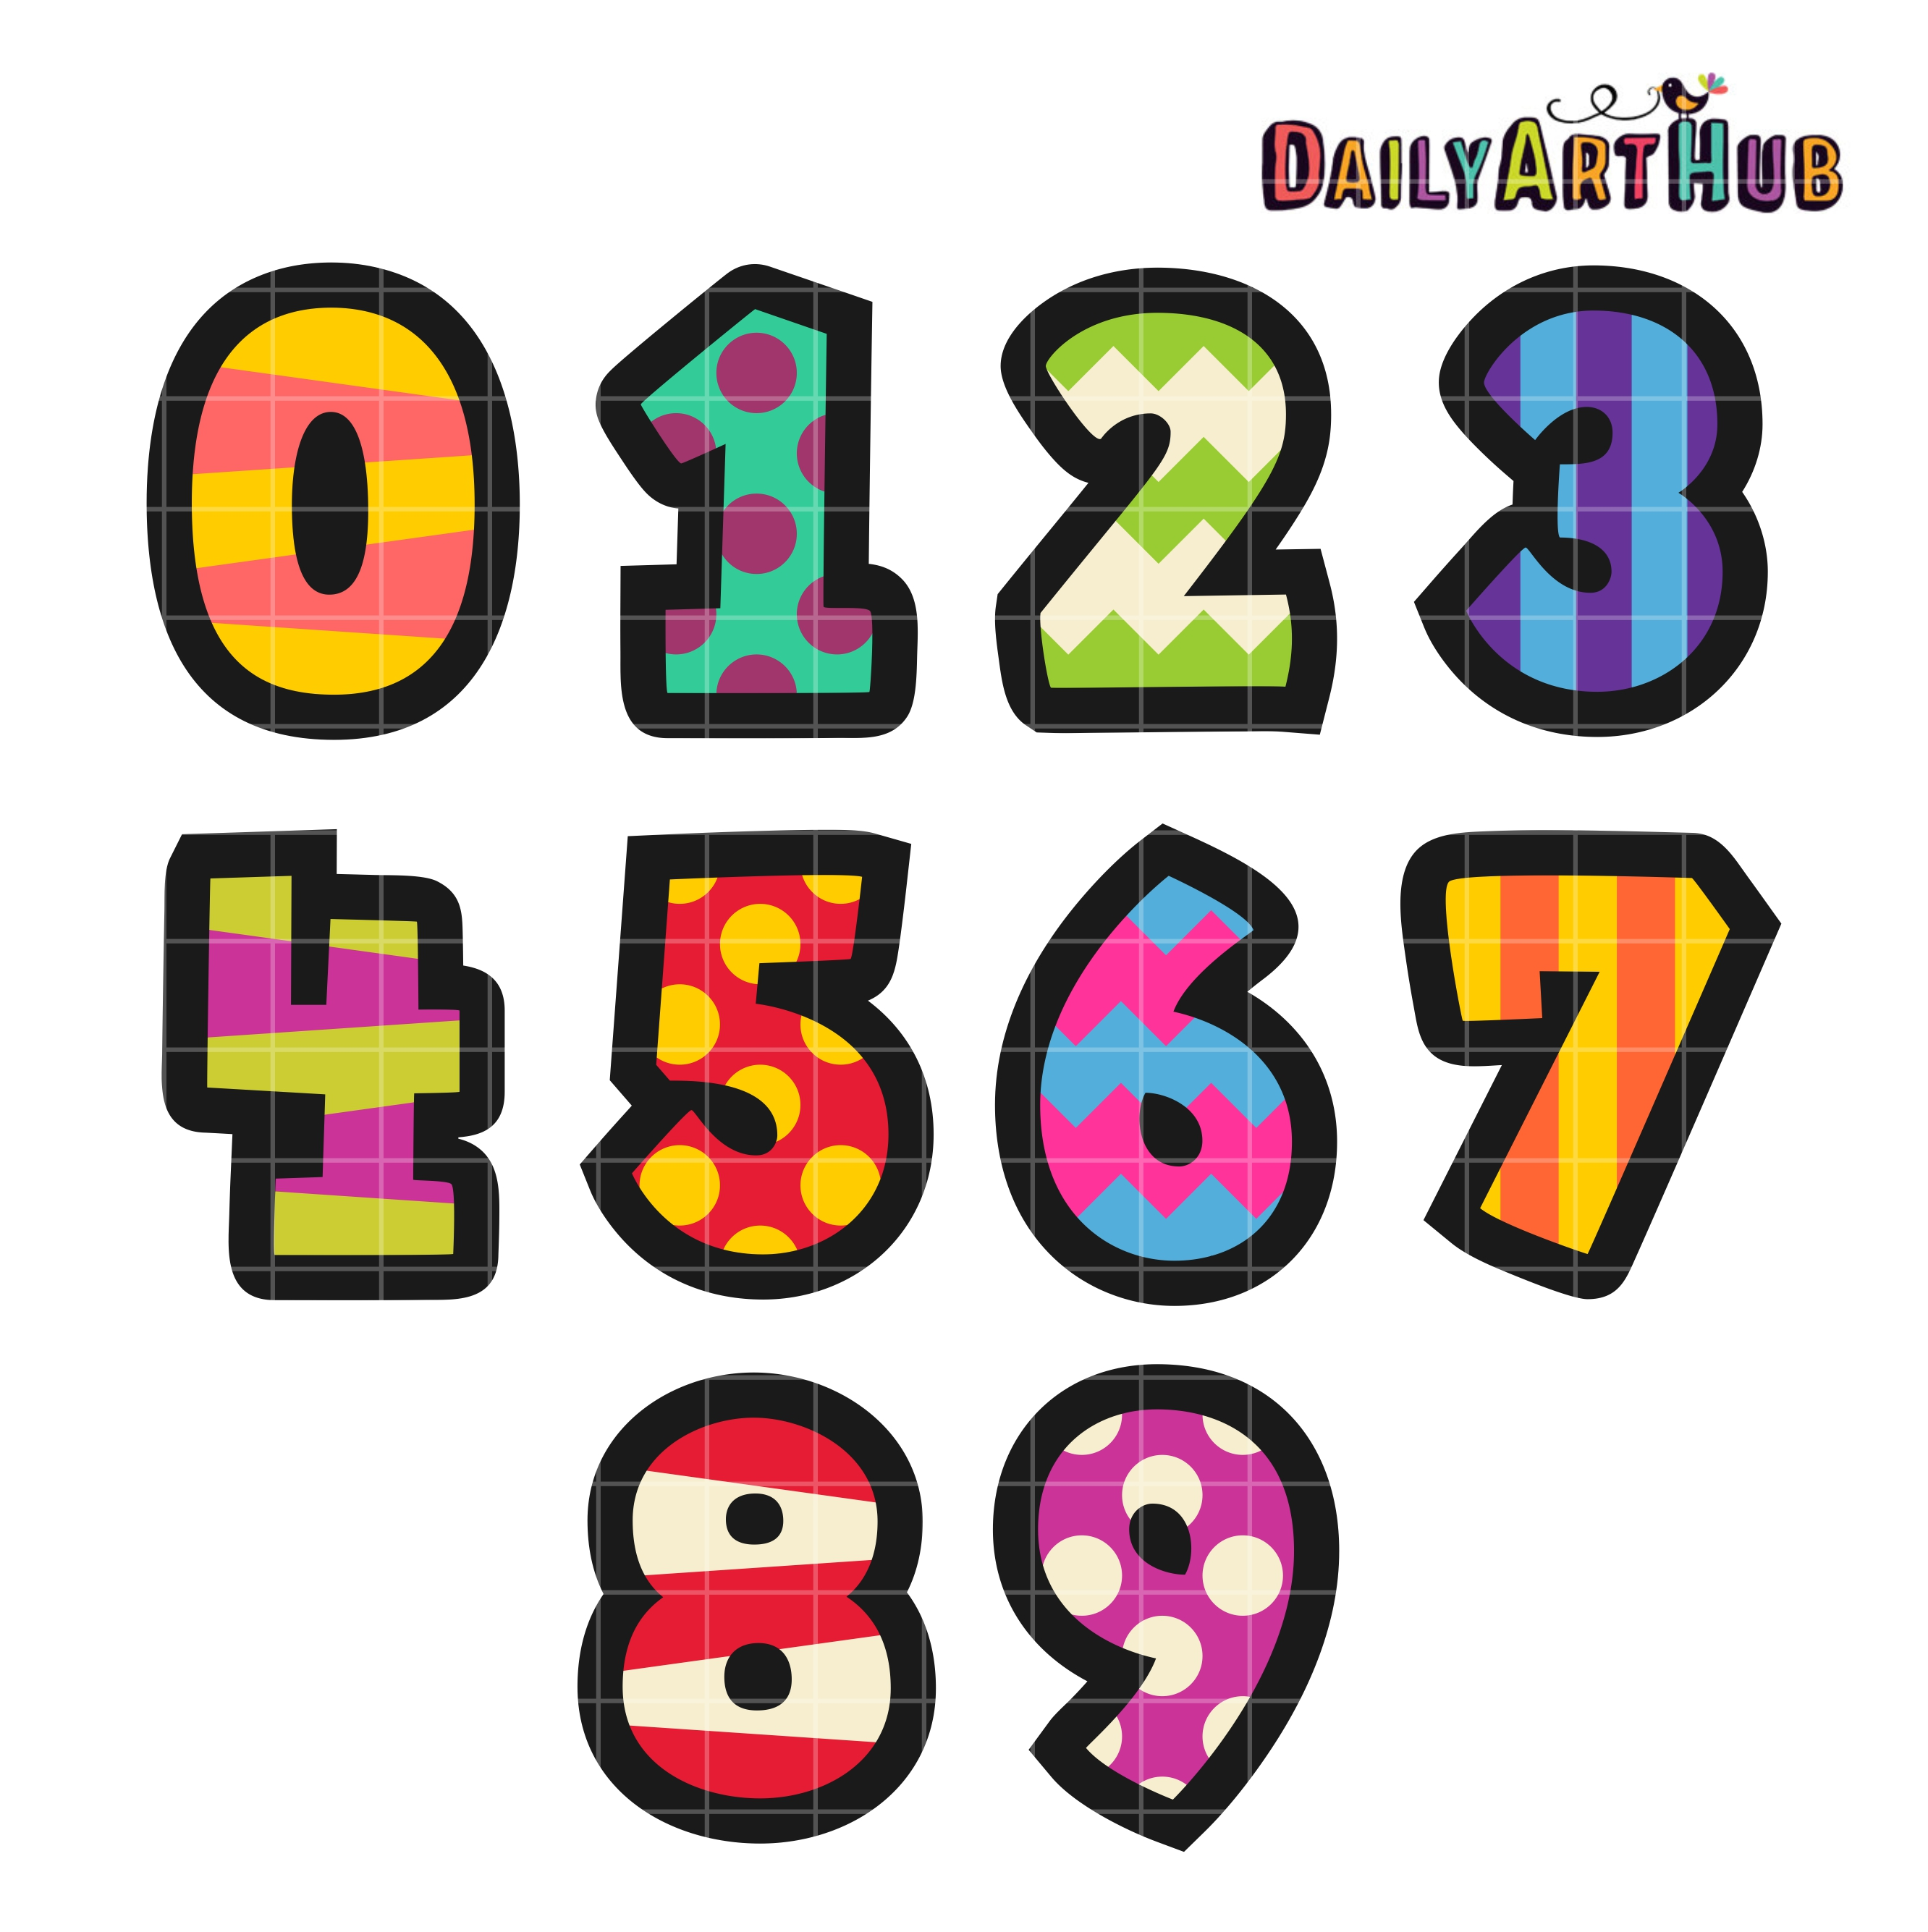 Cartoony Numbers Clip Art Set  U2013 Daily Art Hub  U2013 Free Clip